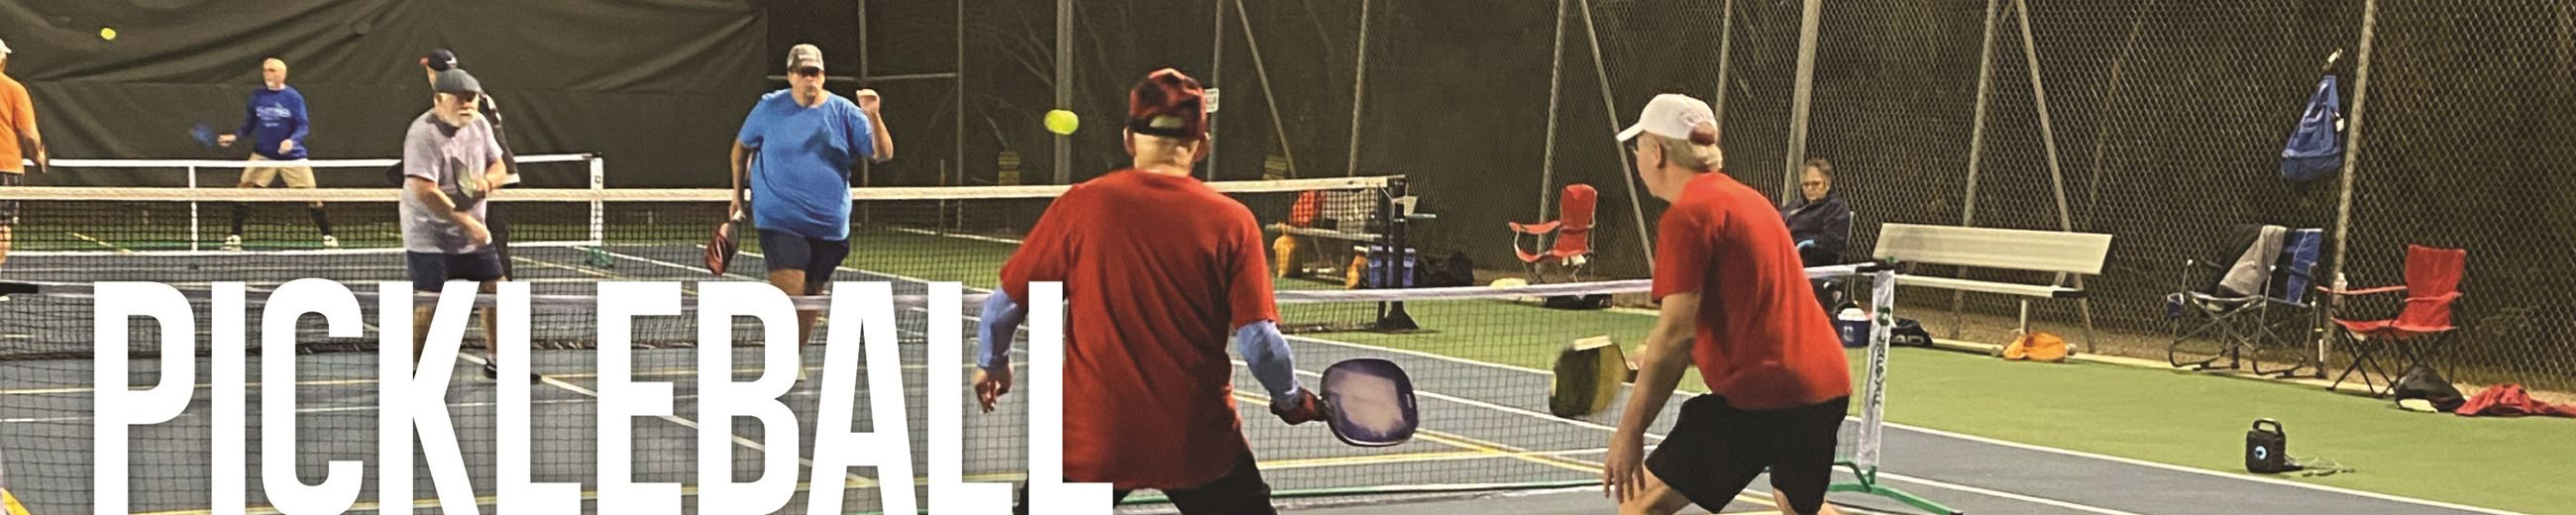 Pickleball Webpage Graphic-02